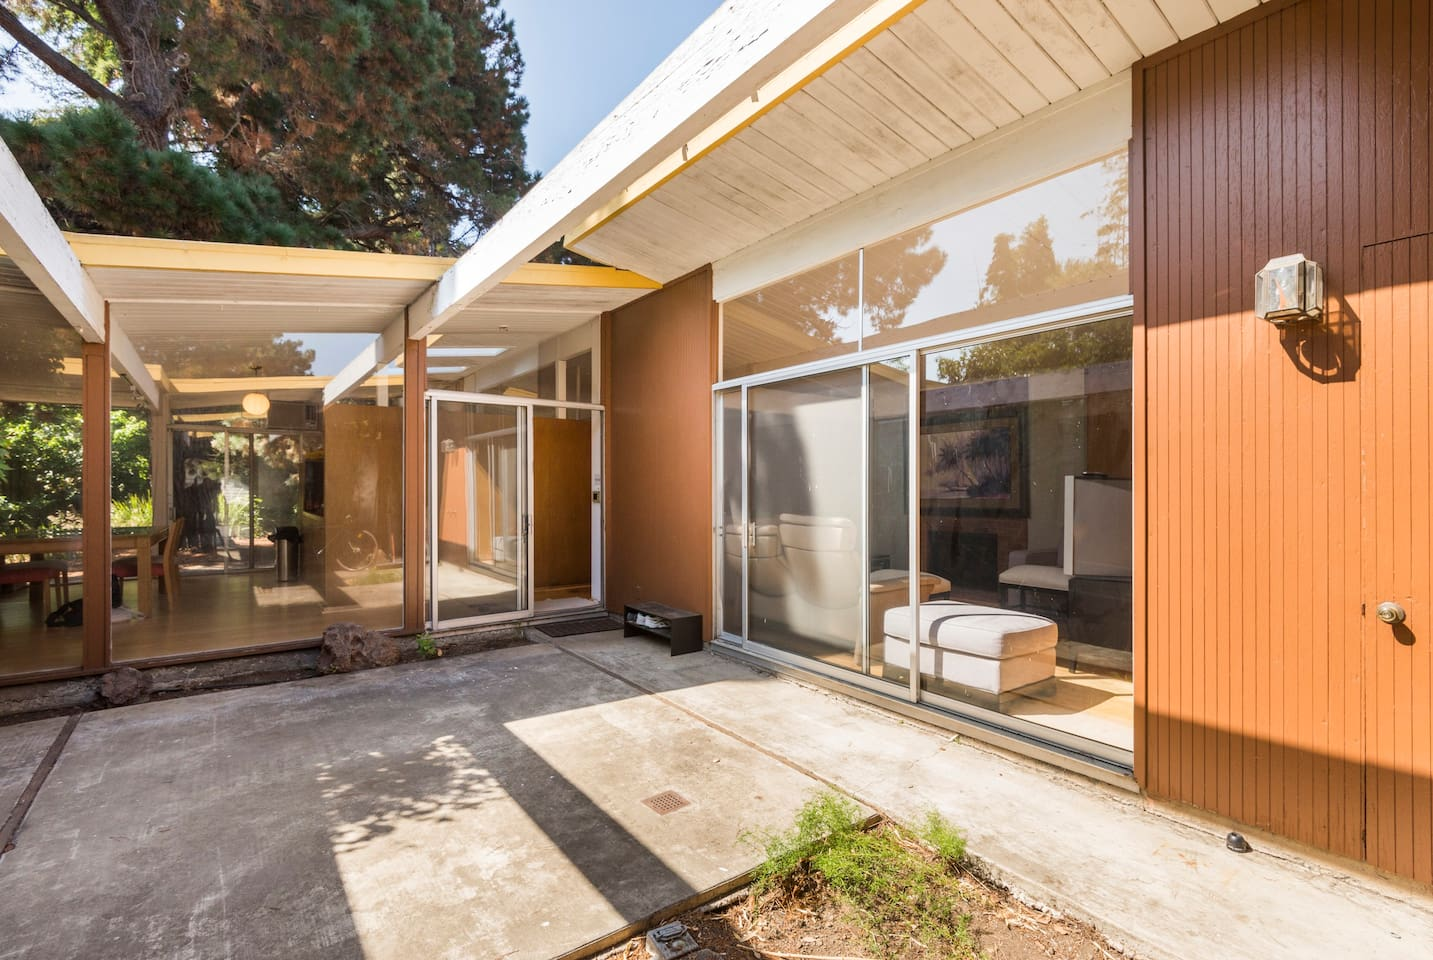 Eichler House - Private Room 1